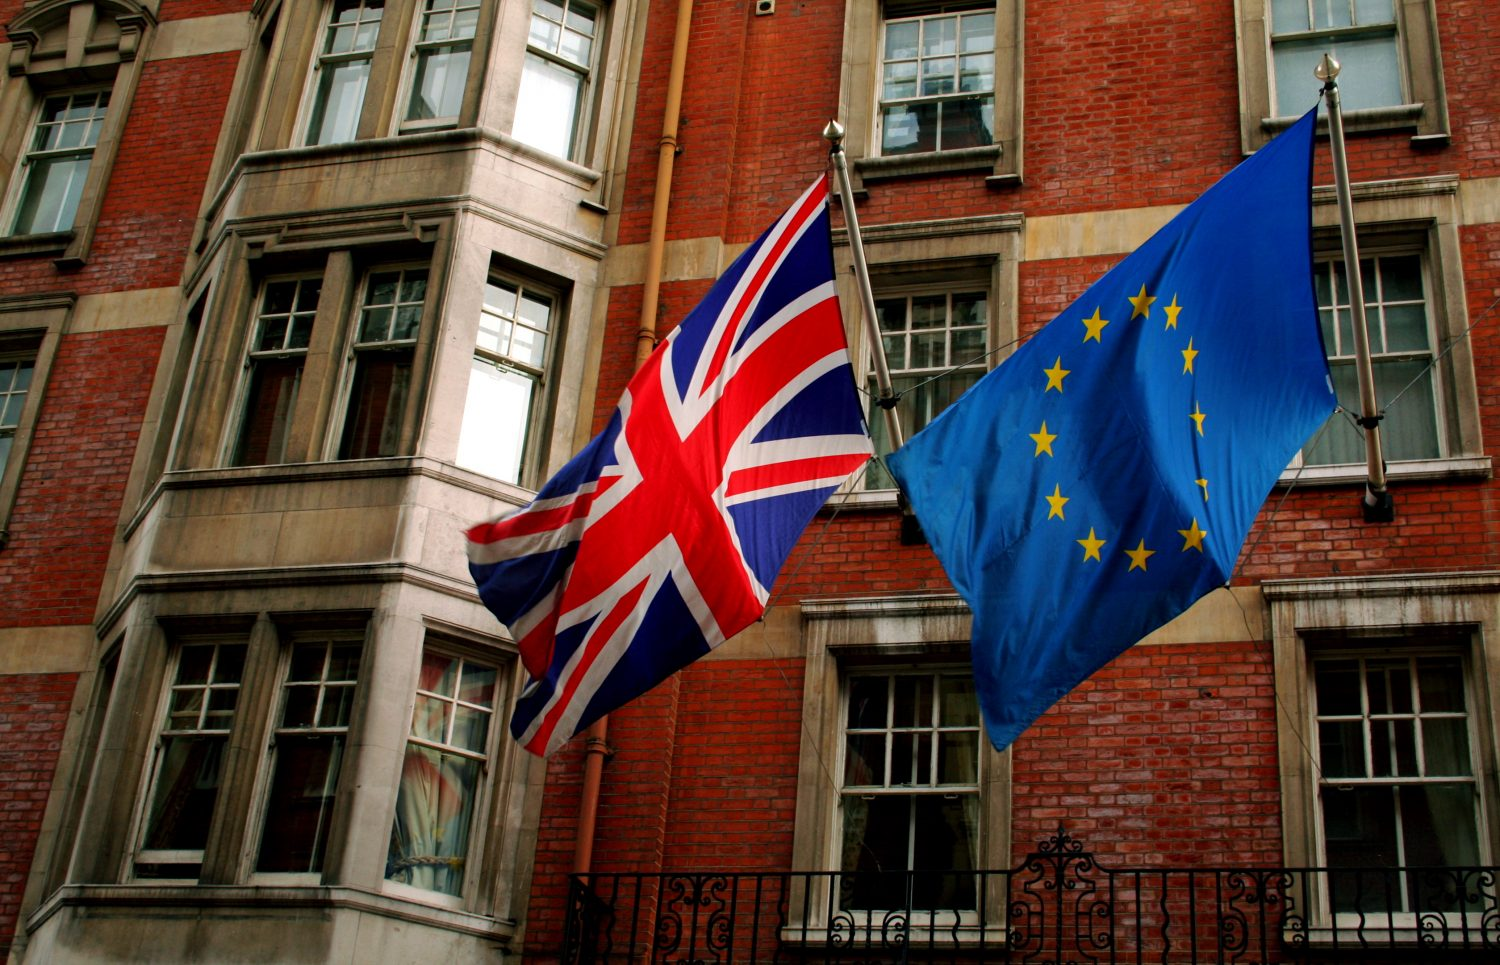 Detoxifying the UK's exit from the EU: a multi-national compromise is possible